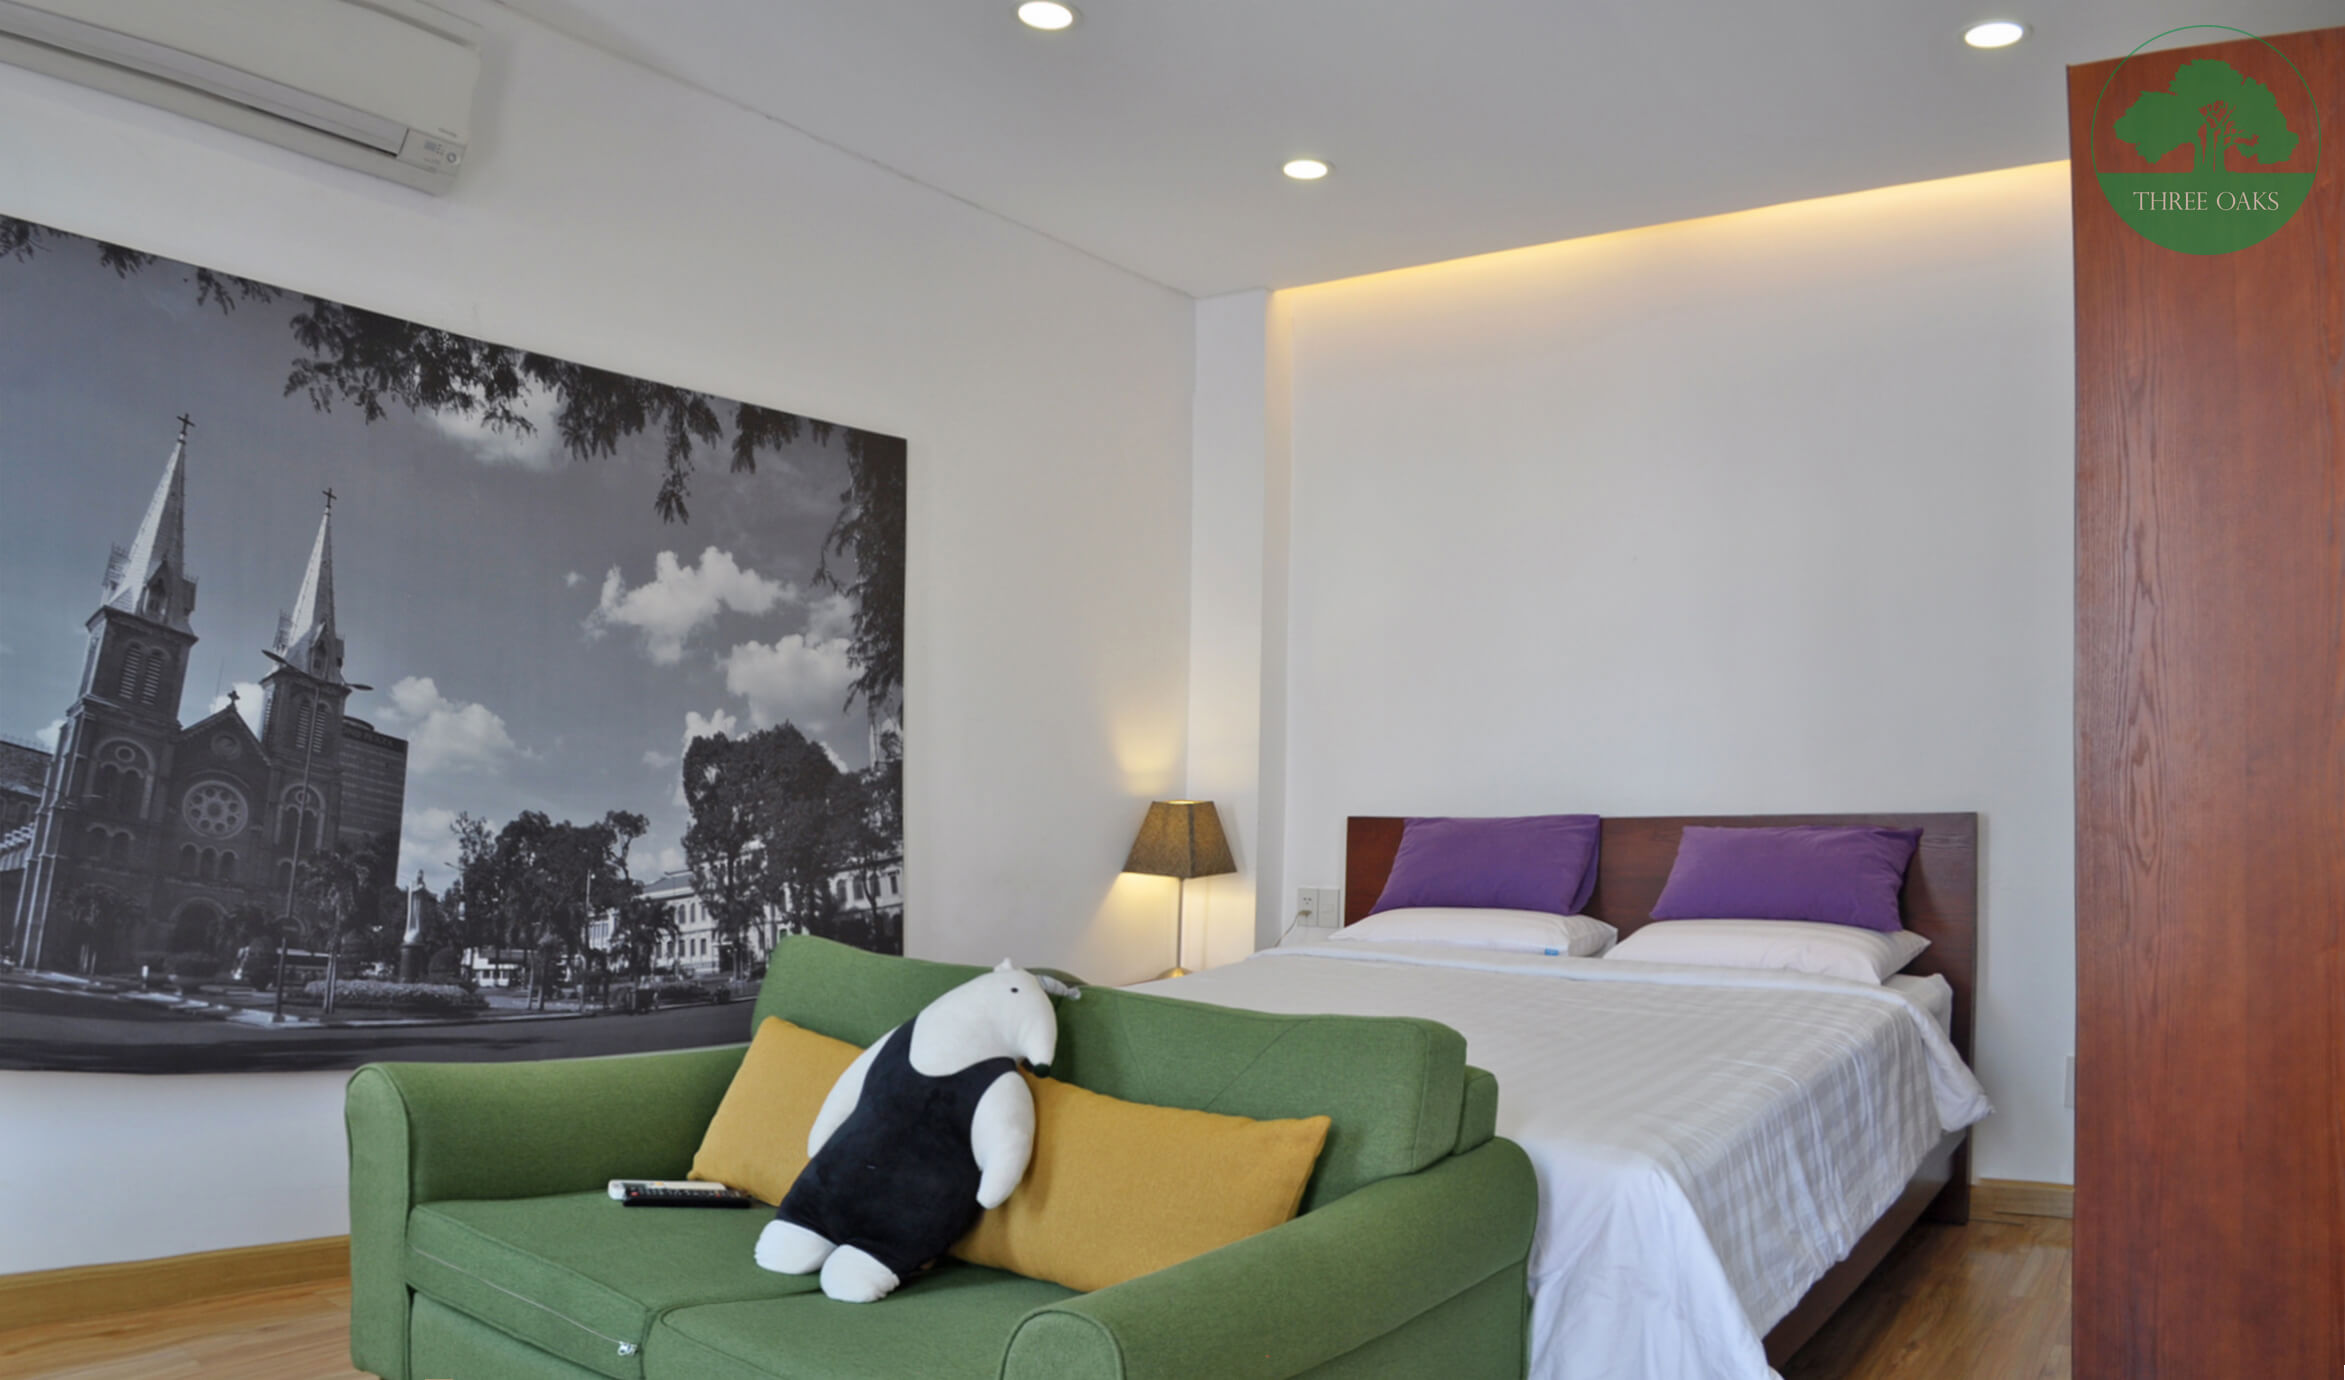 serviced-apartment-in-hcm-for-rent-in-District-1-three-oaks-8